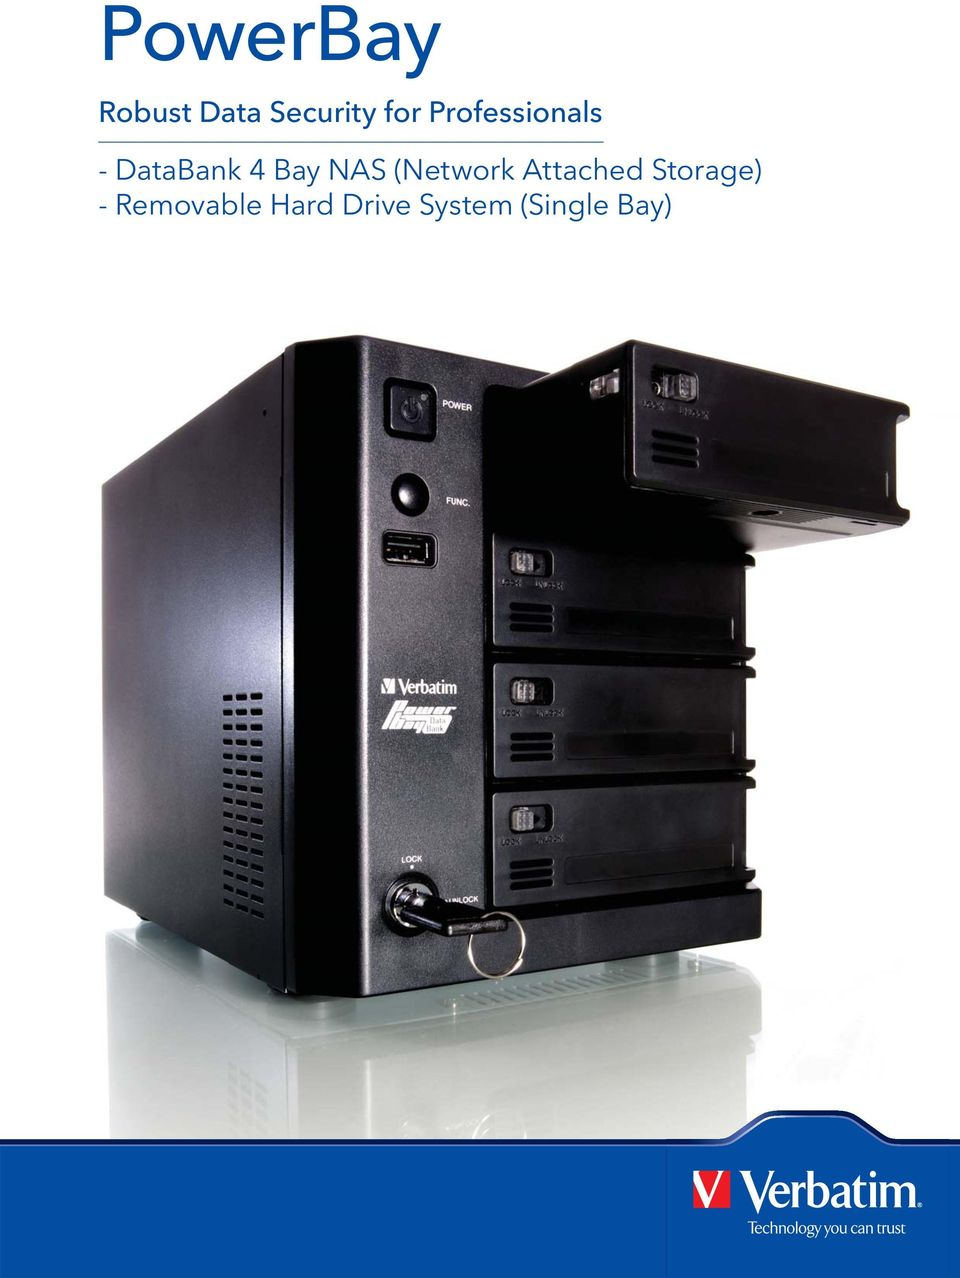 (Network Attached Storage) -